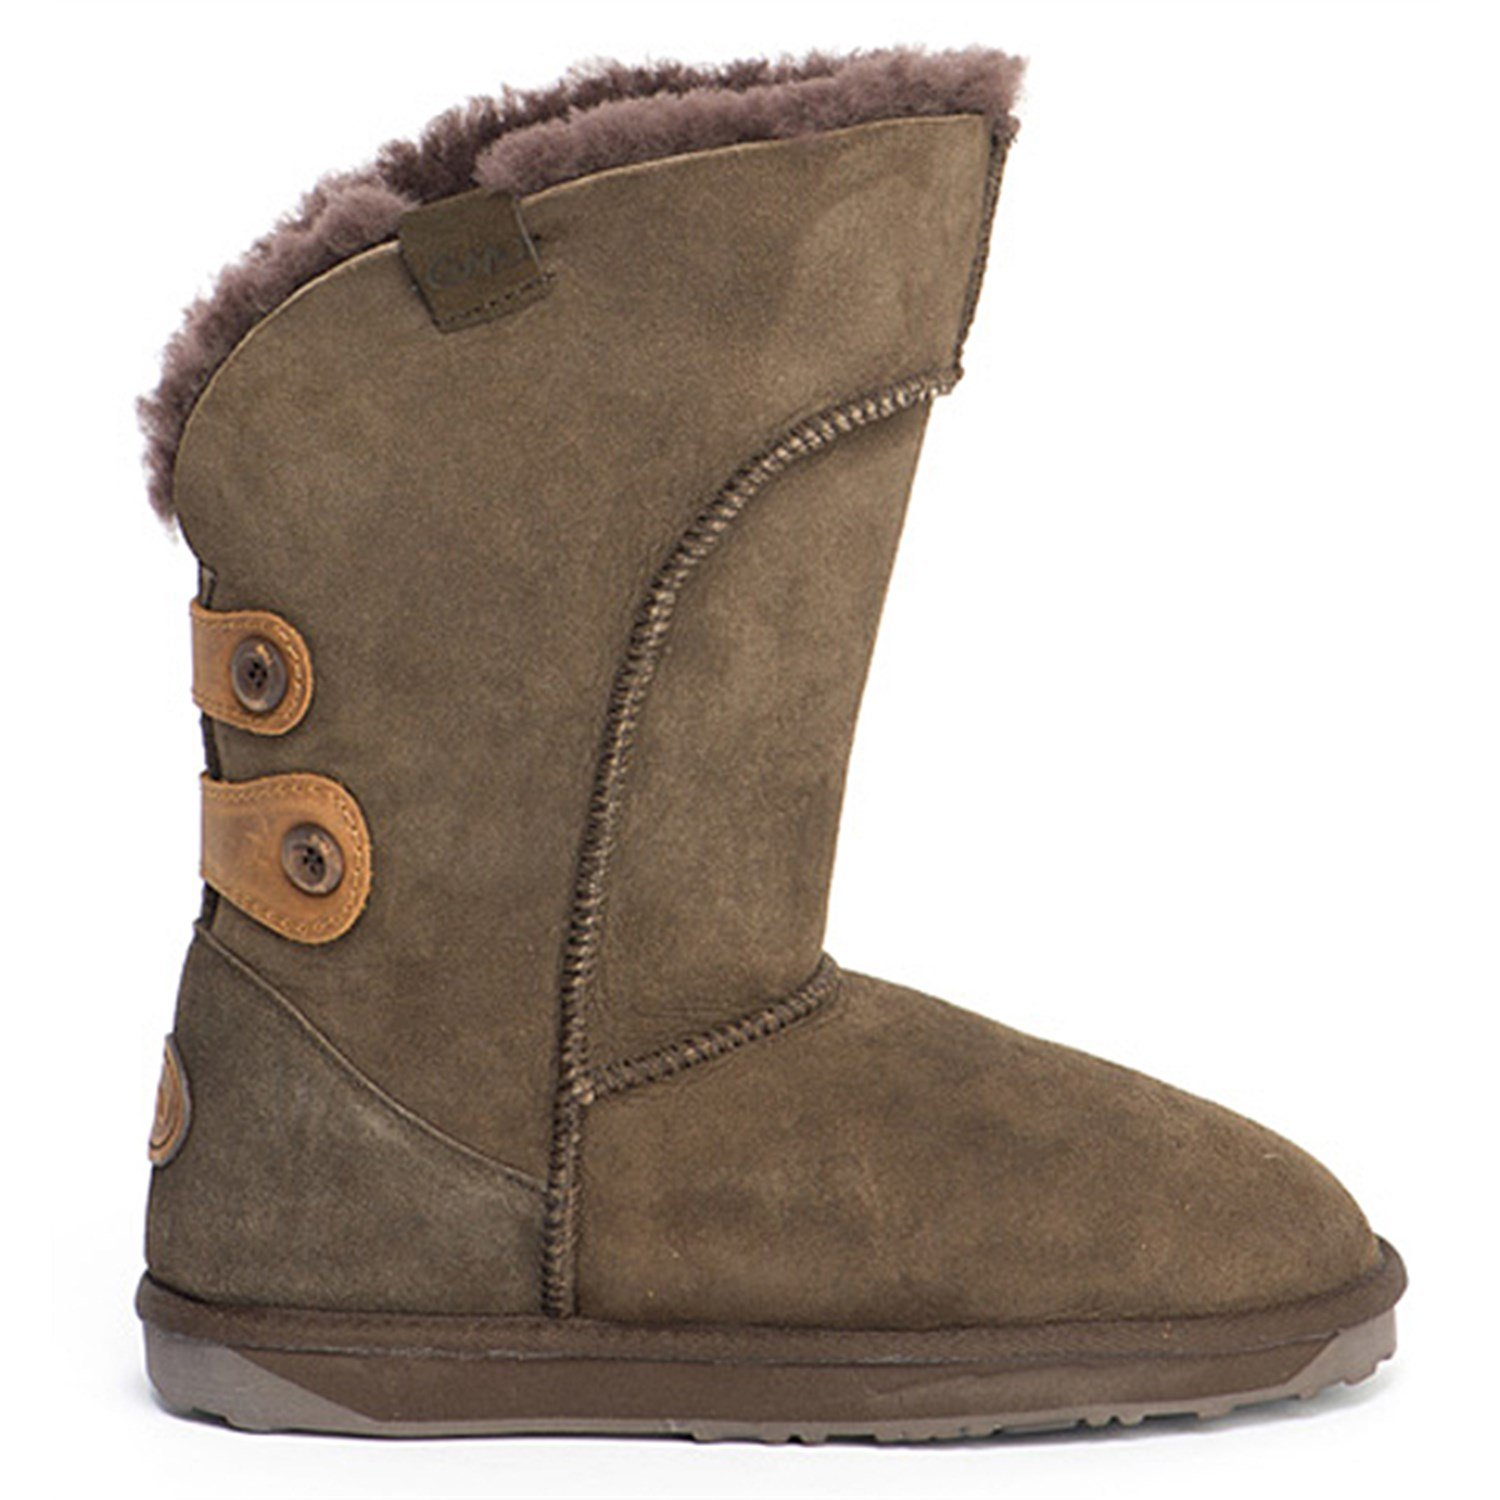 Ugg Australia Boots Sale 70% Off - Cheap Uggs Classic Tall,Short & Mini Boots Outlet From Uggs Factory Outlet No Tax And Free Shipping!Check Out Our Entire Collection.